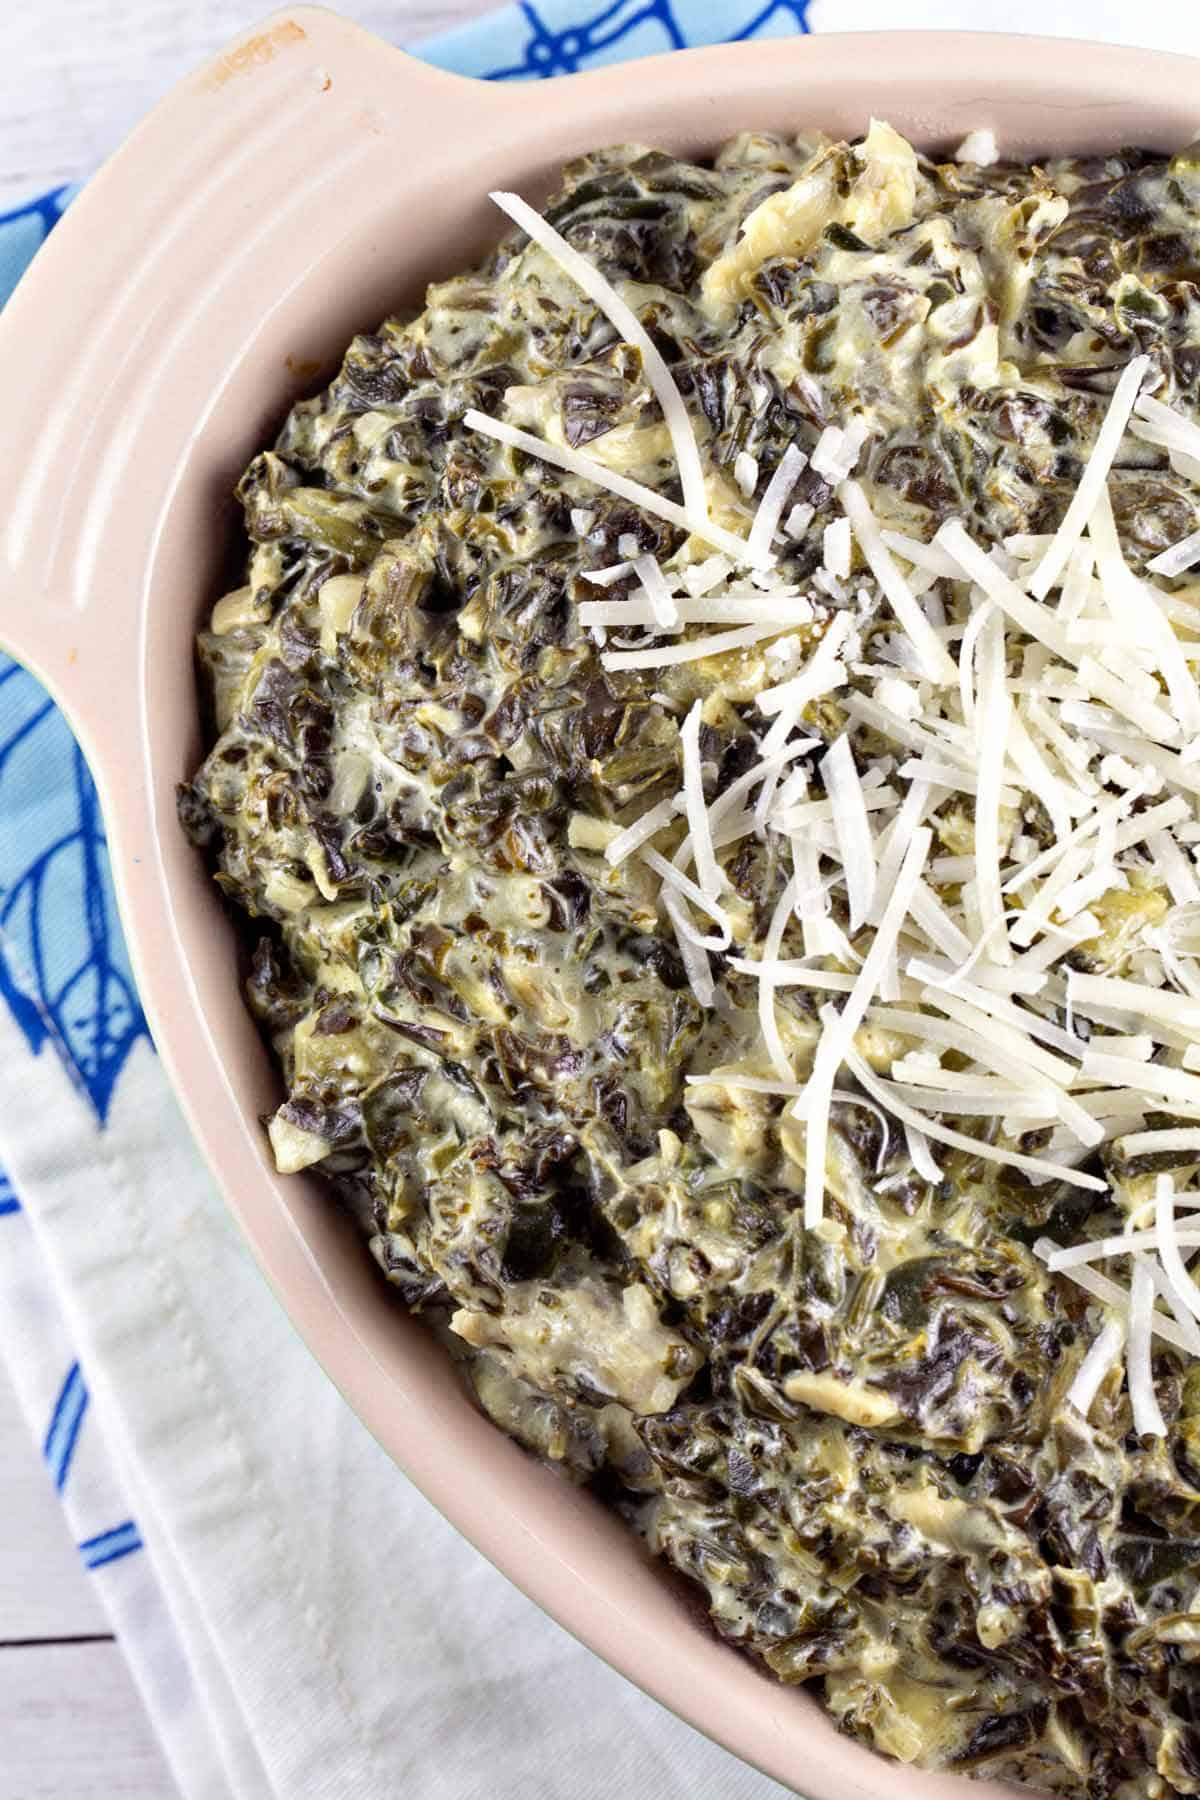 ceramic bowl filled with baked spinach and artichoke dip